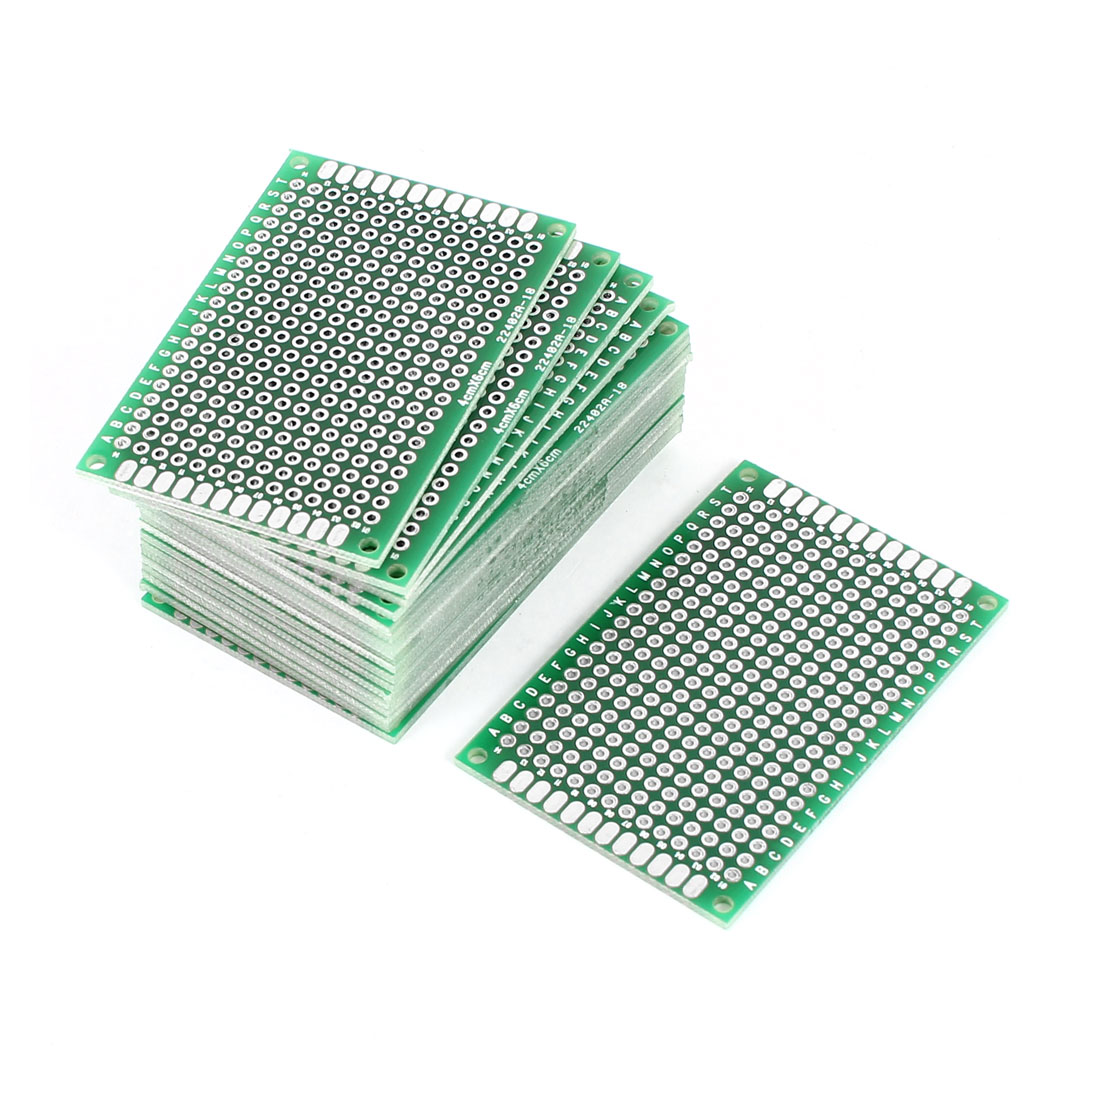 20 PCS 4cm x 6cm Double Sides Prototyping Experiment Matrix Tinned Universal PCB Print Board for Circuit DIY